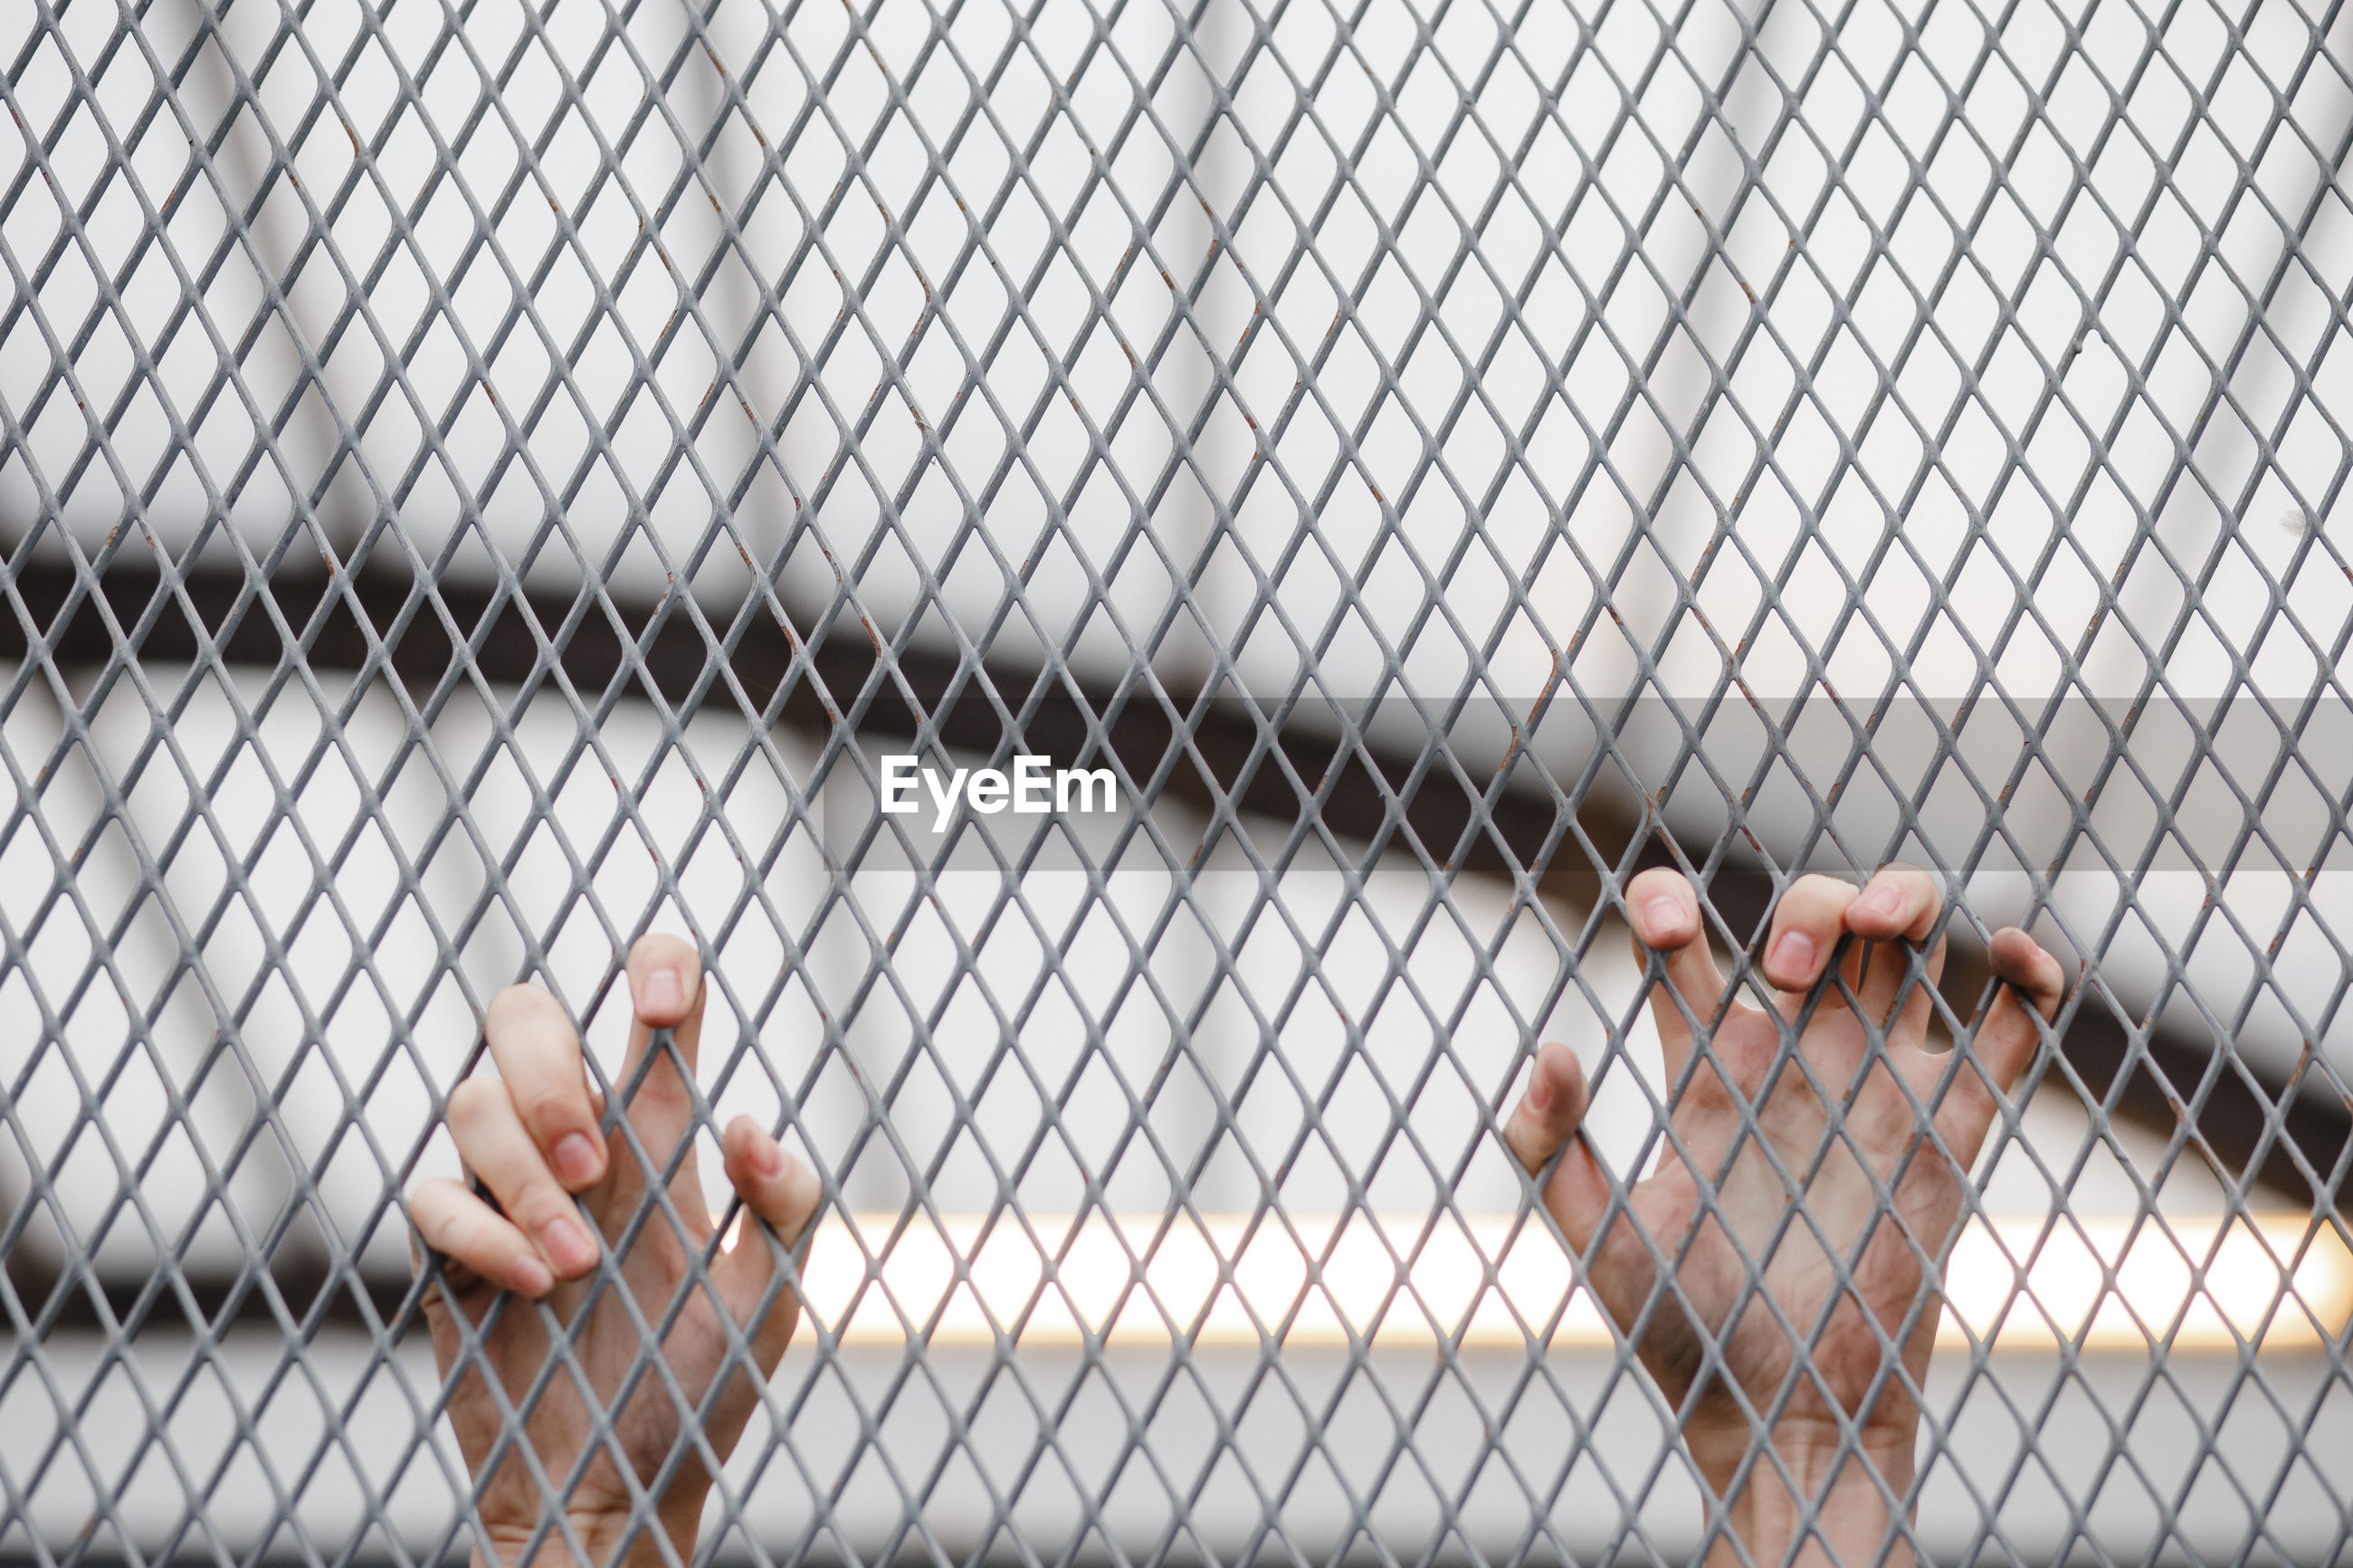 Cropped hand holding chainlink fence outdoors